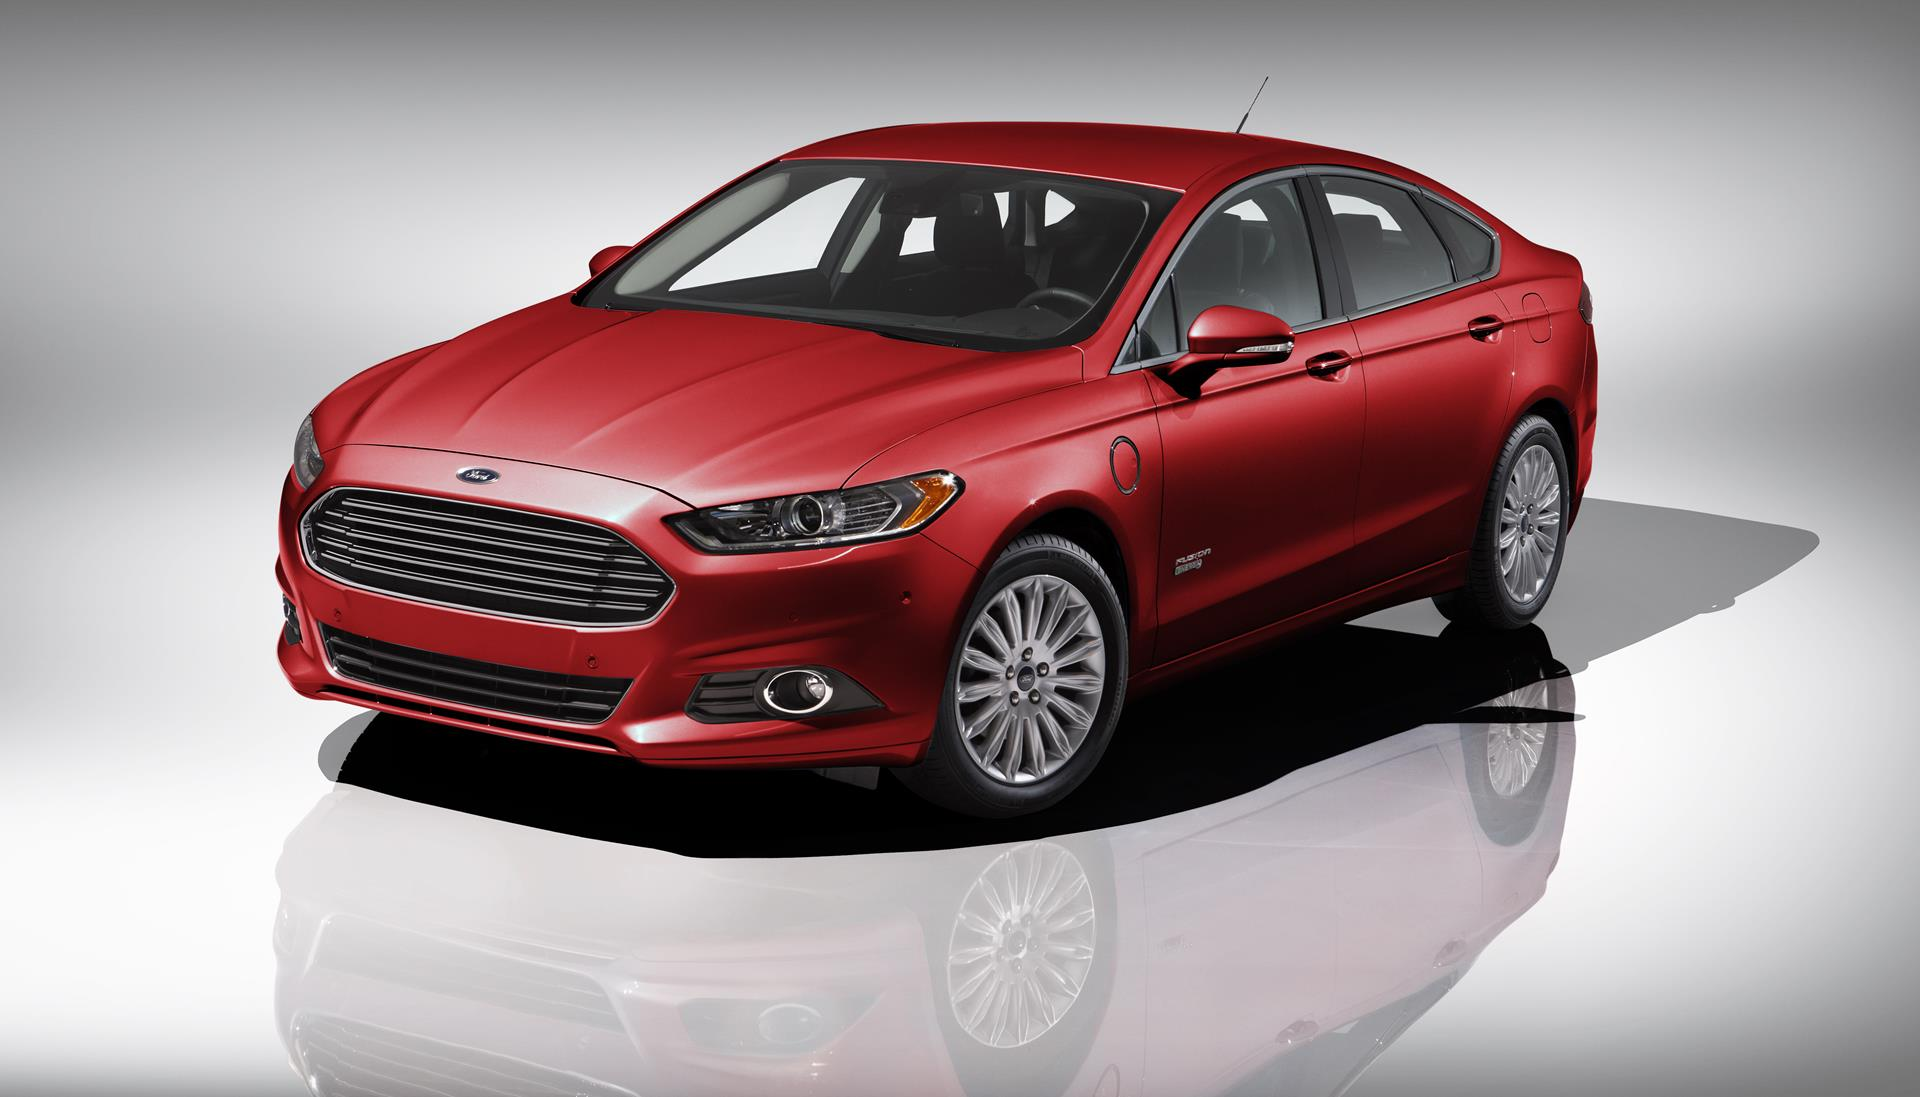 2015 Ford Fusion Energi News and Information